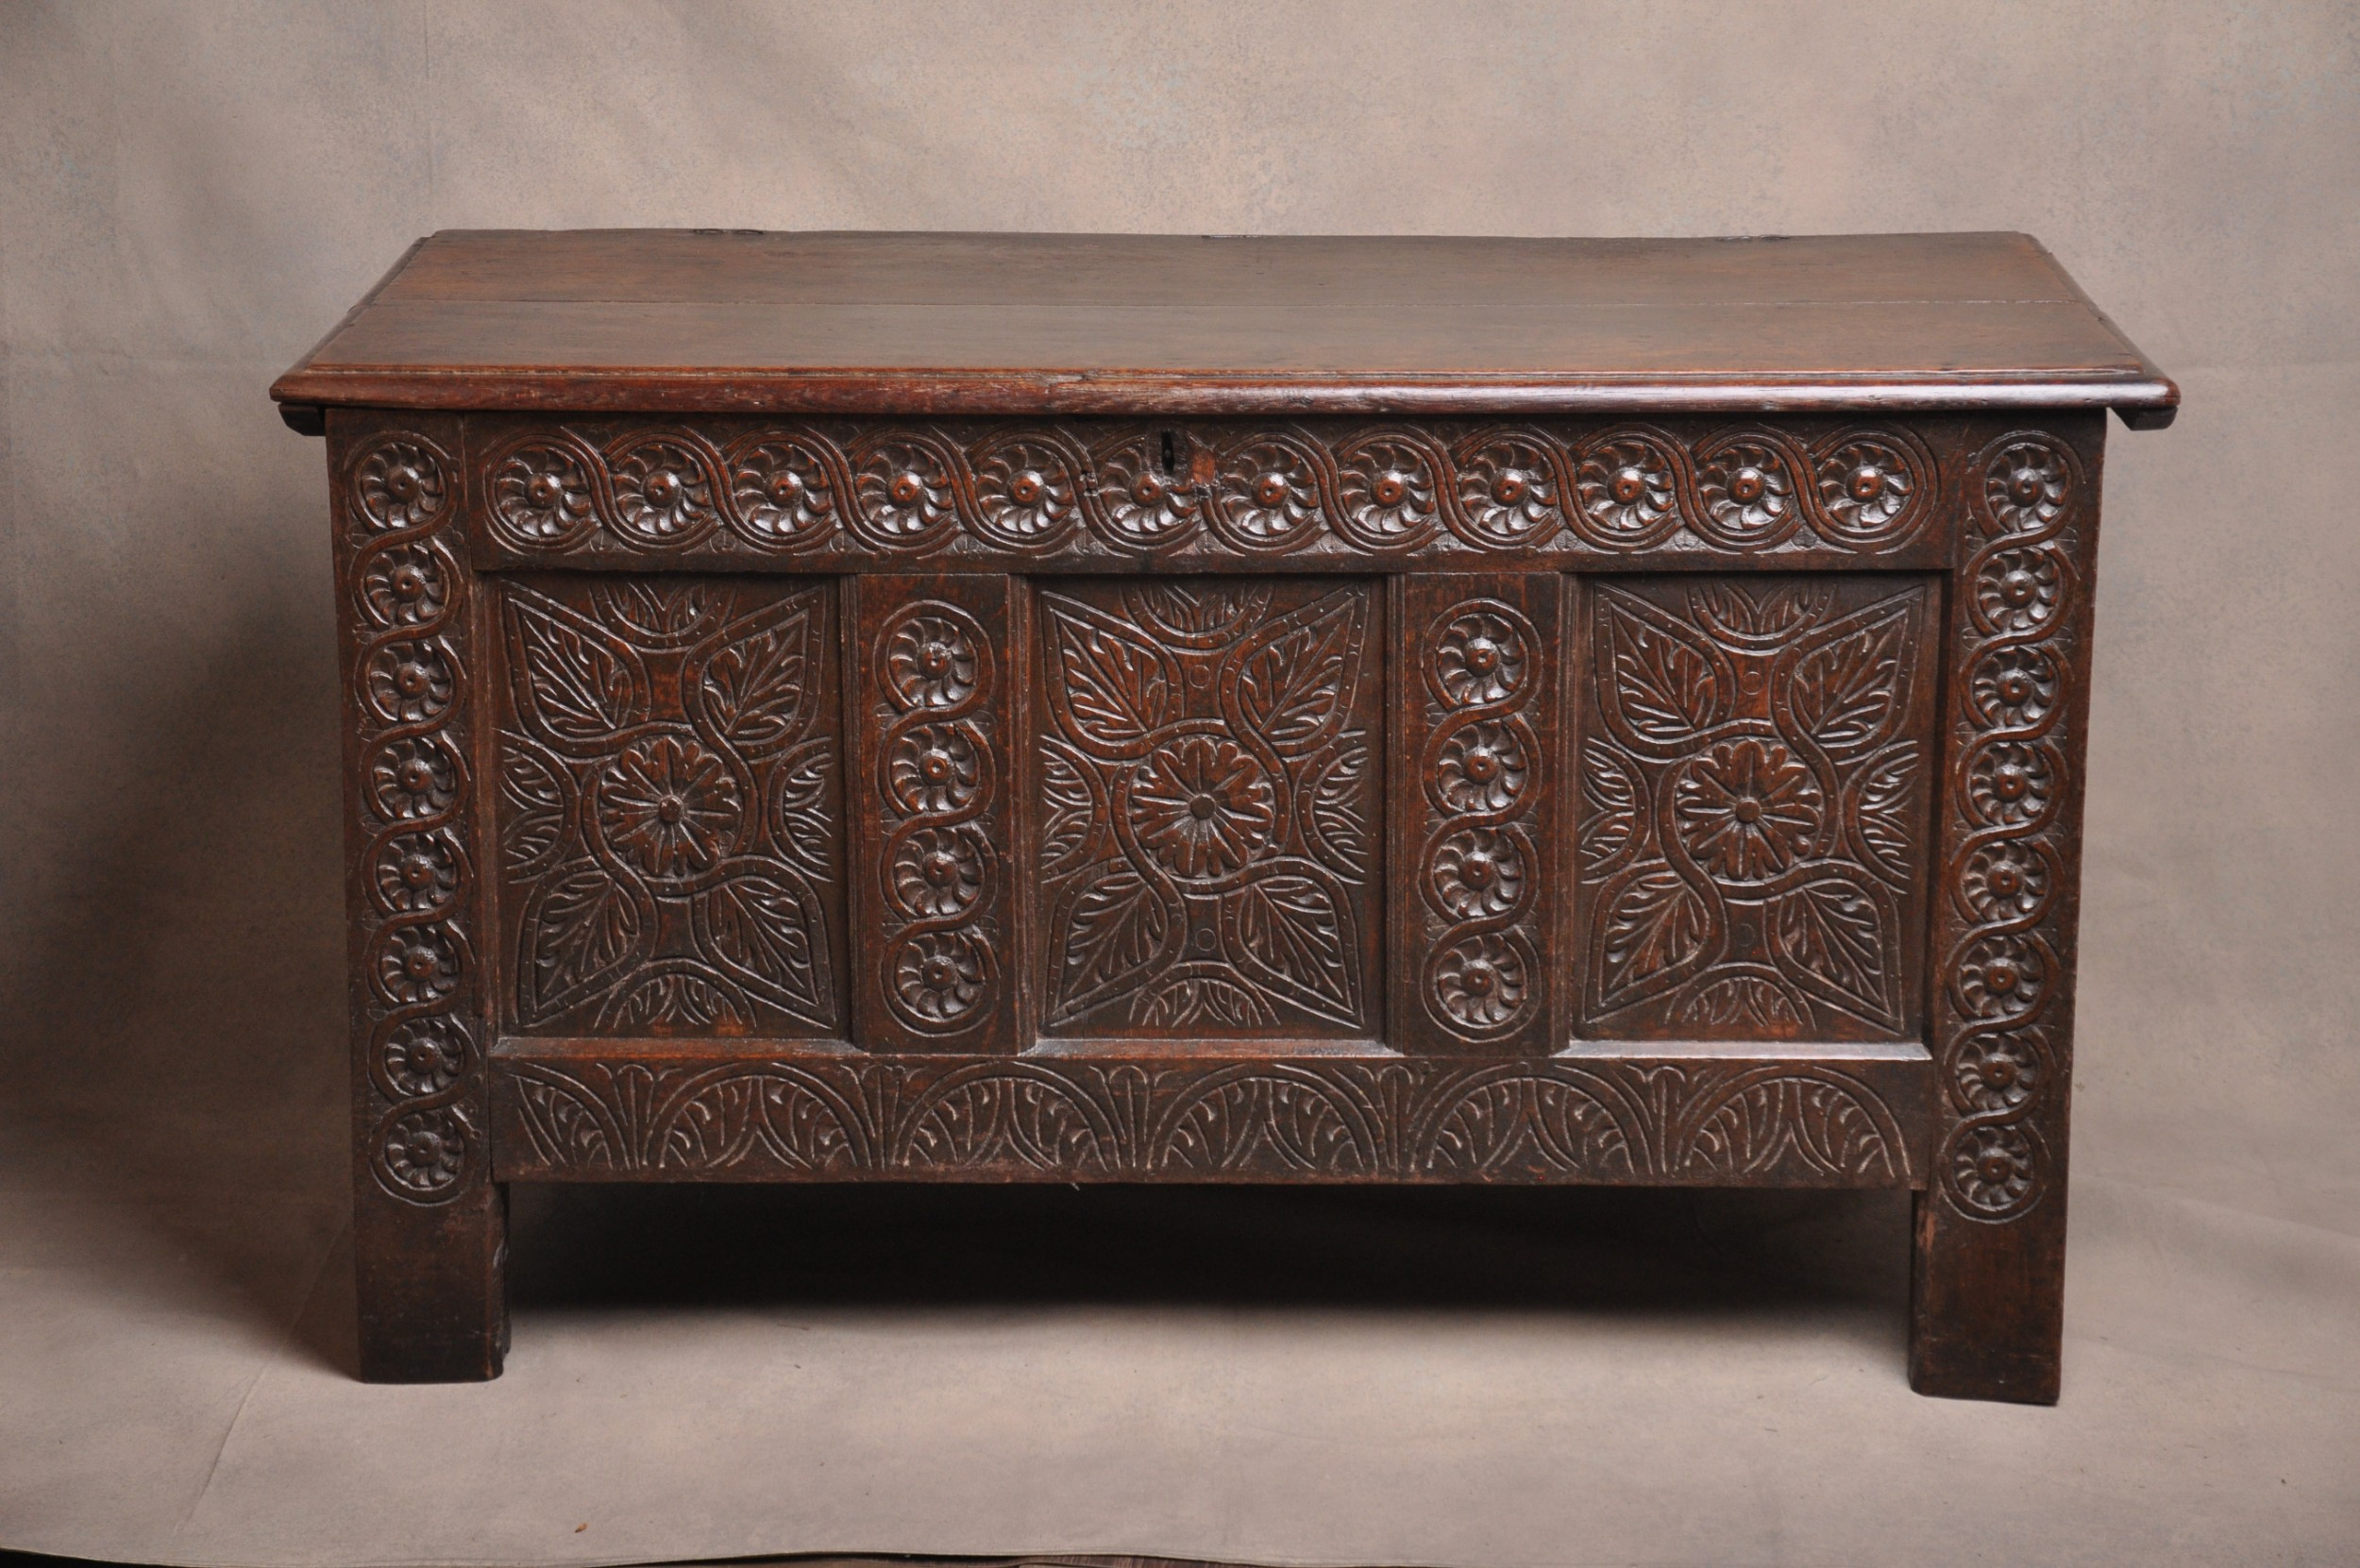 17th century west country coffer